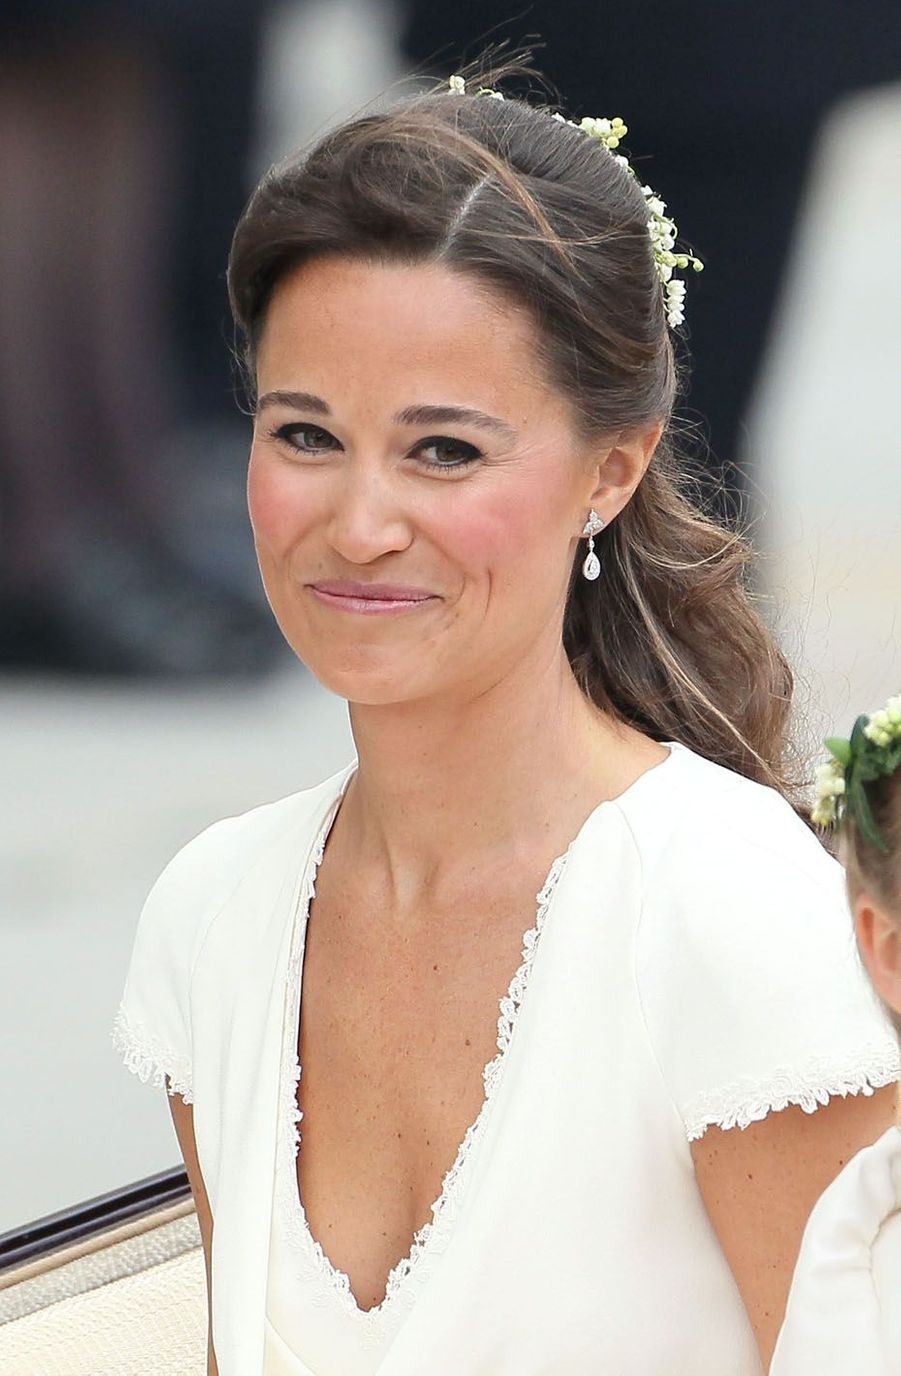 Pippa Middleton Au Mariage De Sa Soeur Kate Middleton Avec Le Prince William, Le 29 Avril 2011 À Londres 30